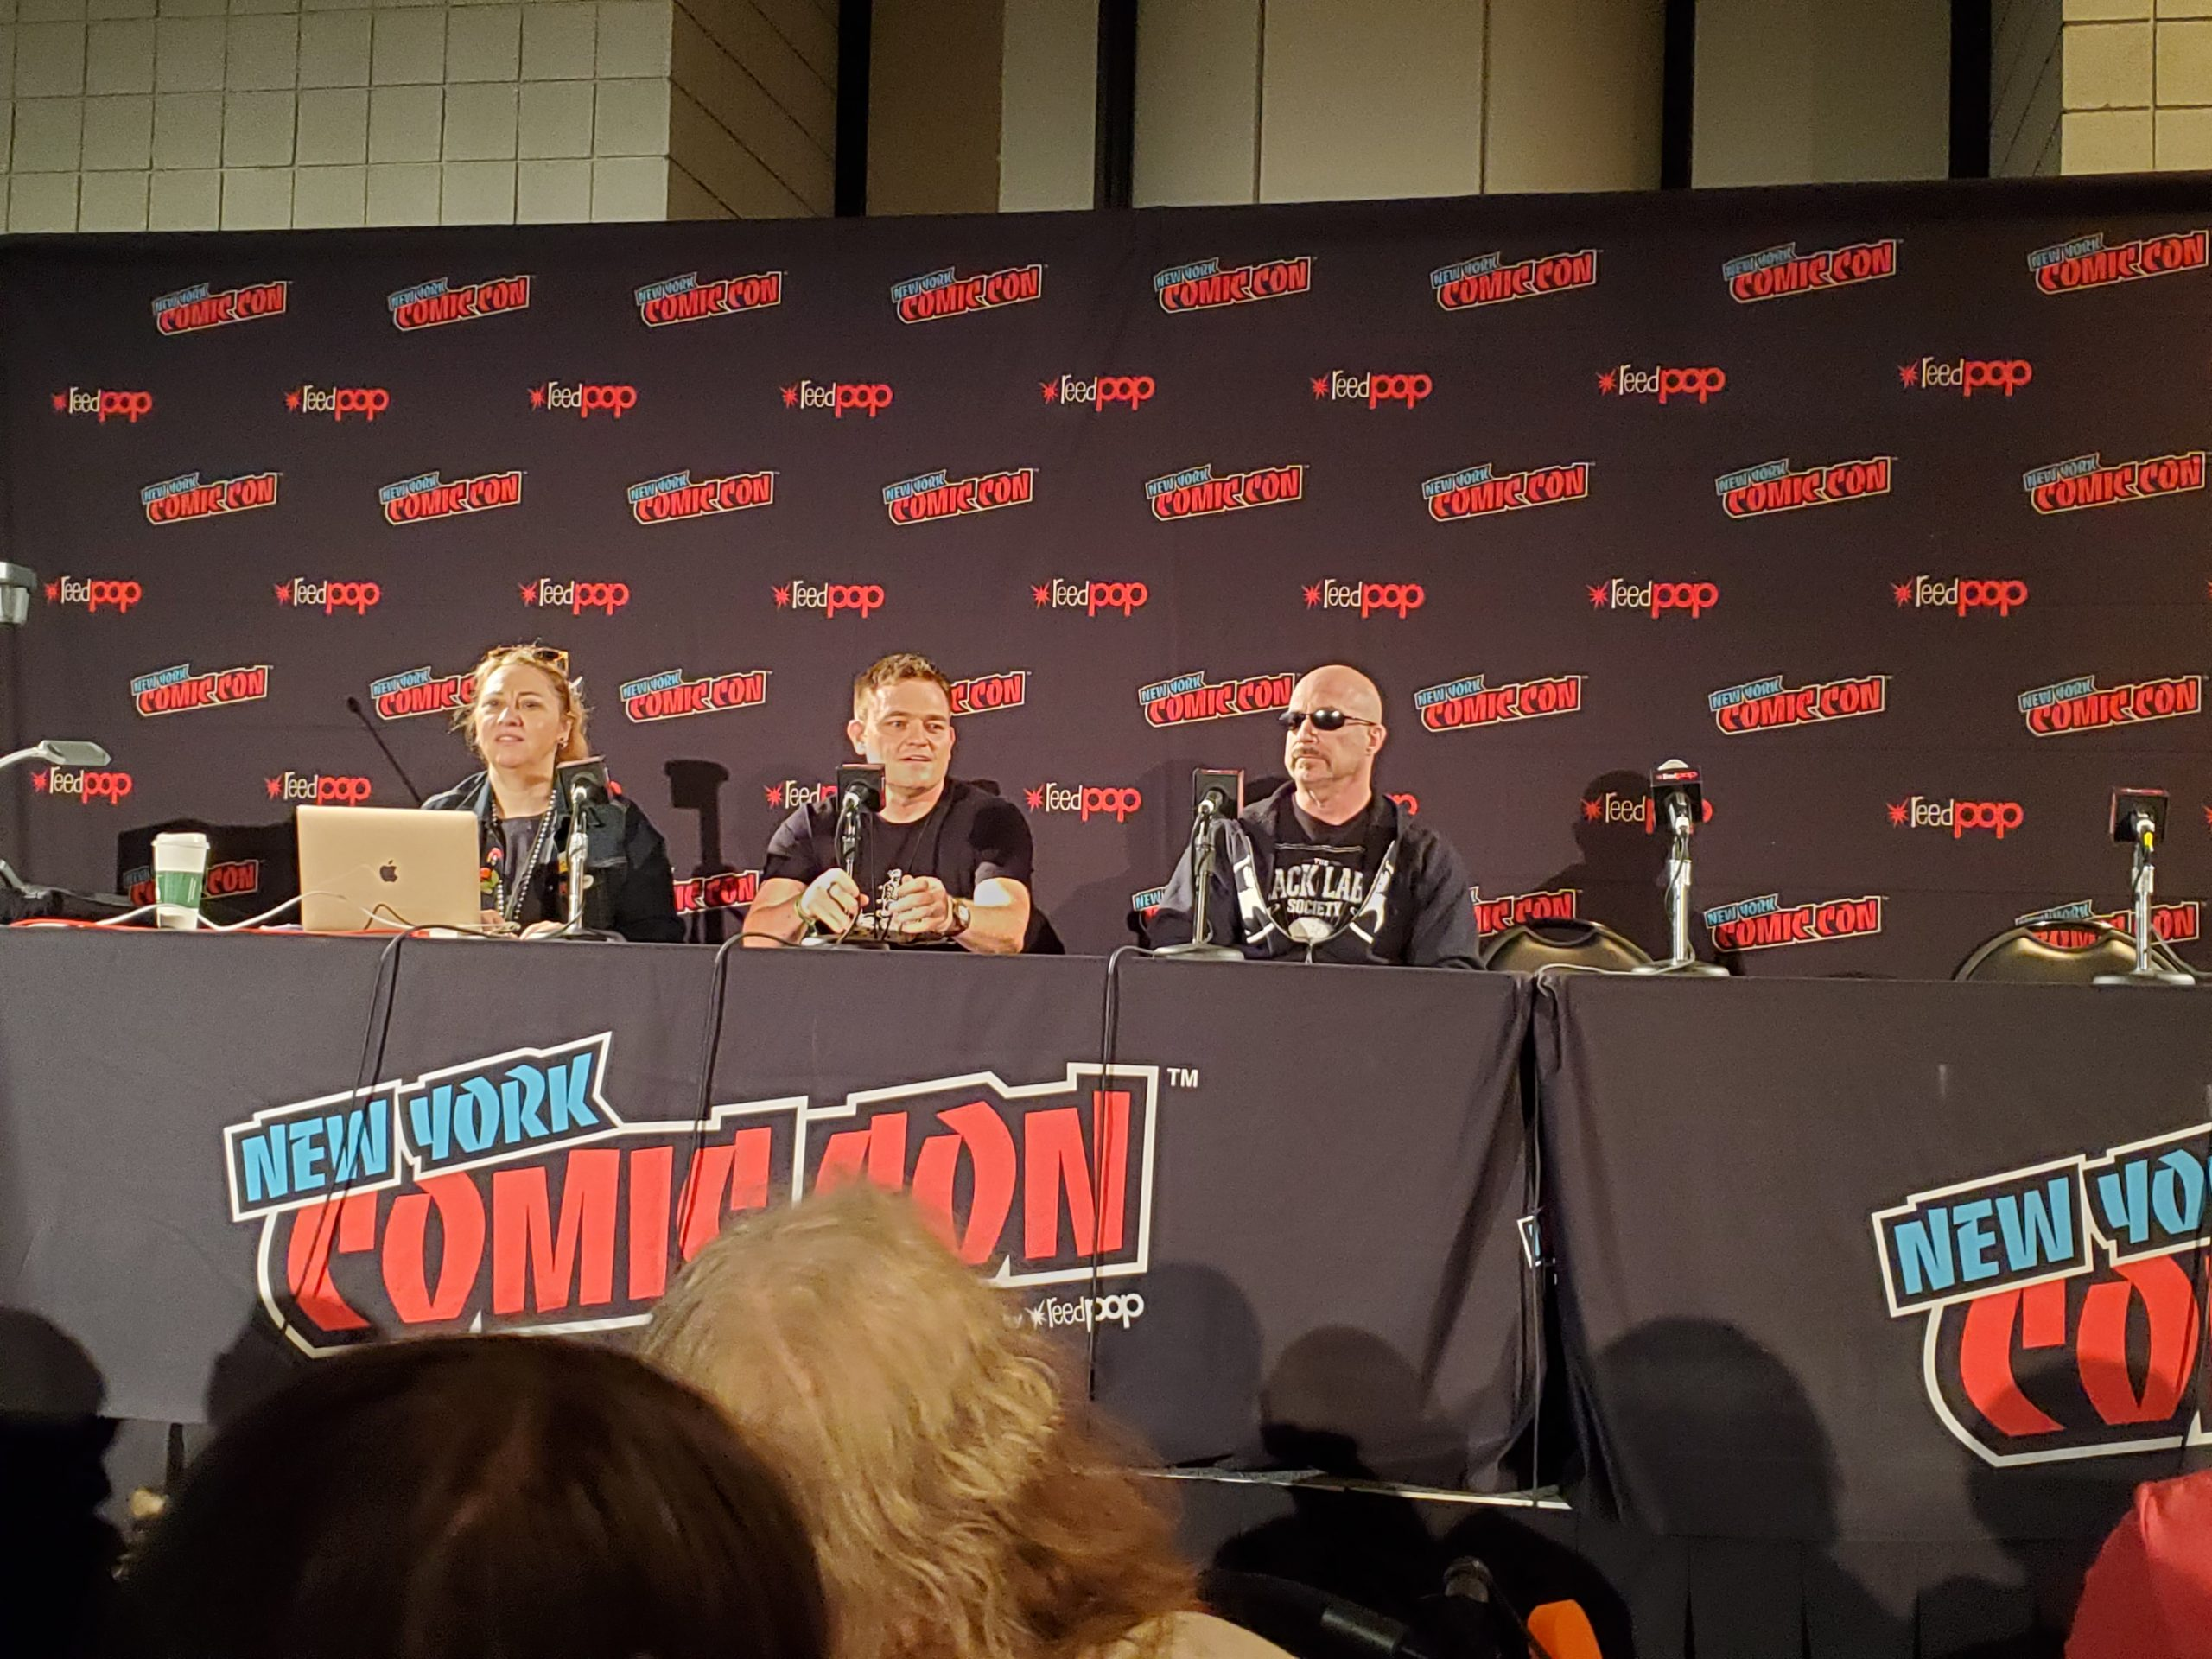 NYCC 2021: Scott Snyder and Greg Capullo open up about 'We Have Demons' and their partnership